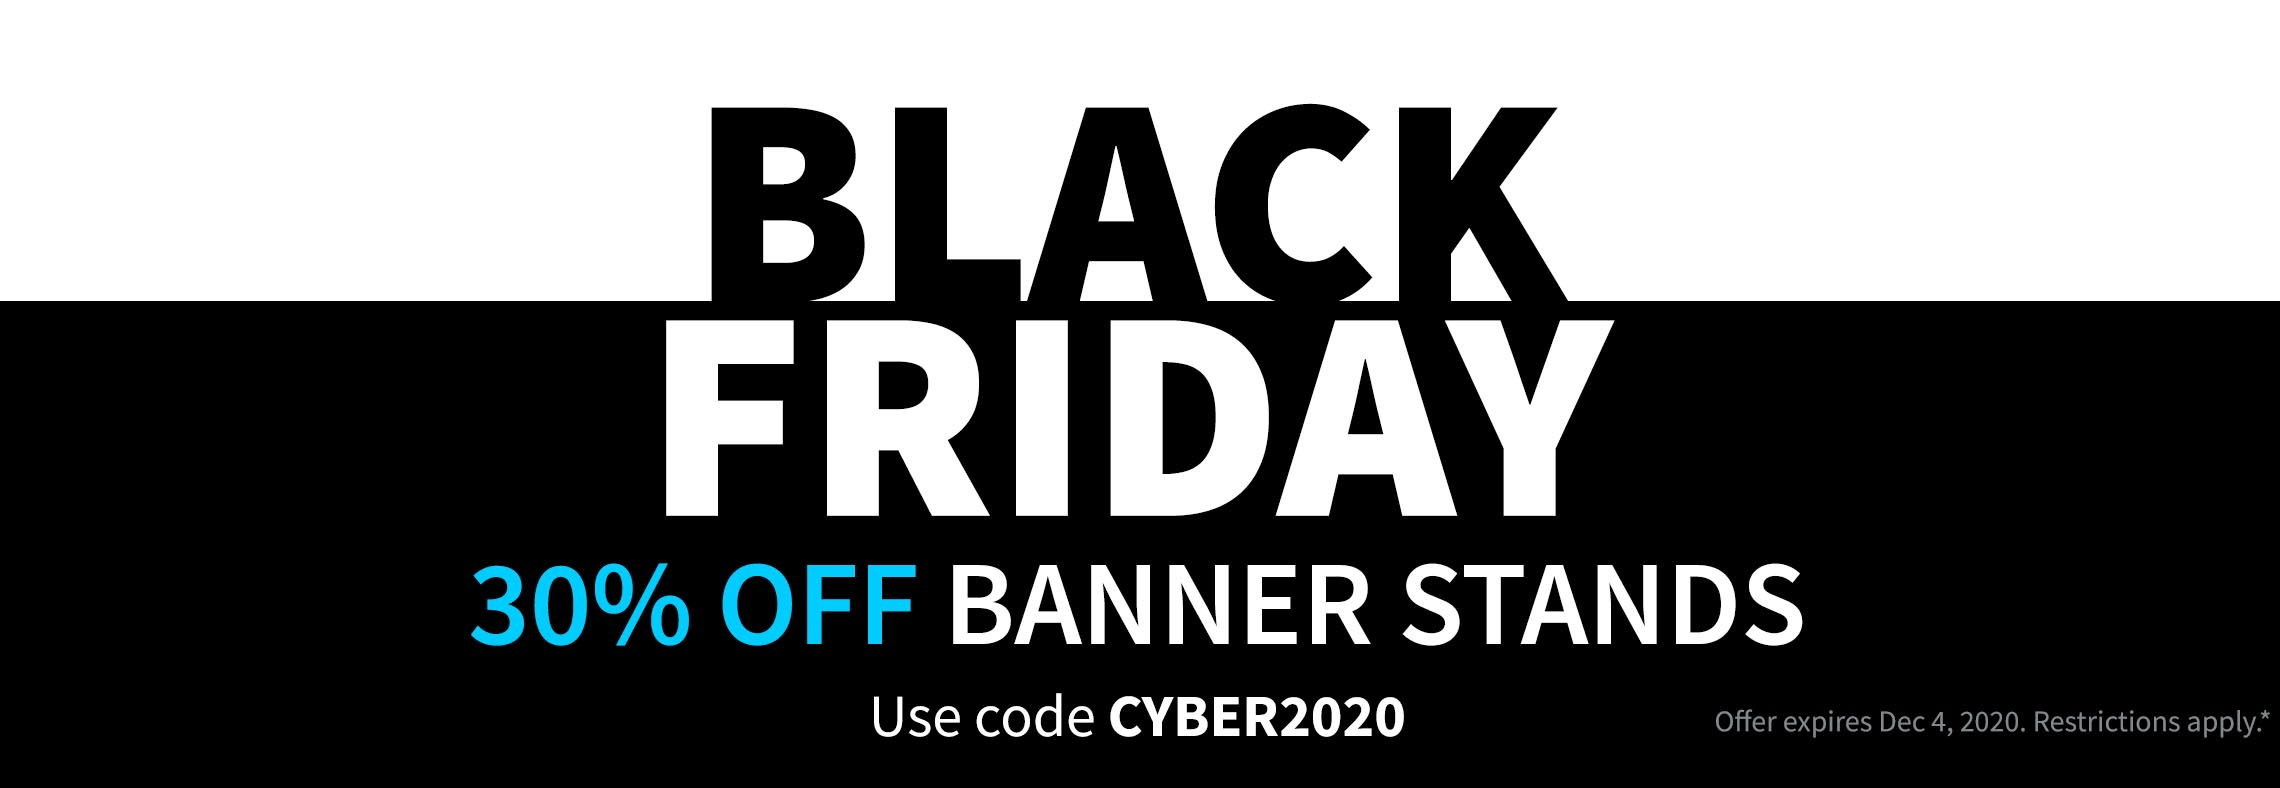 Black Friday CYBER2020 Banner Stands for Professional Displays